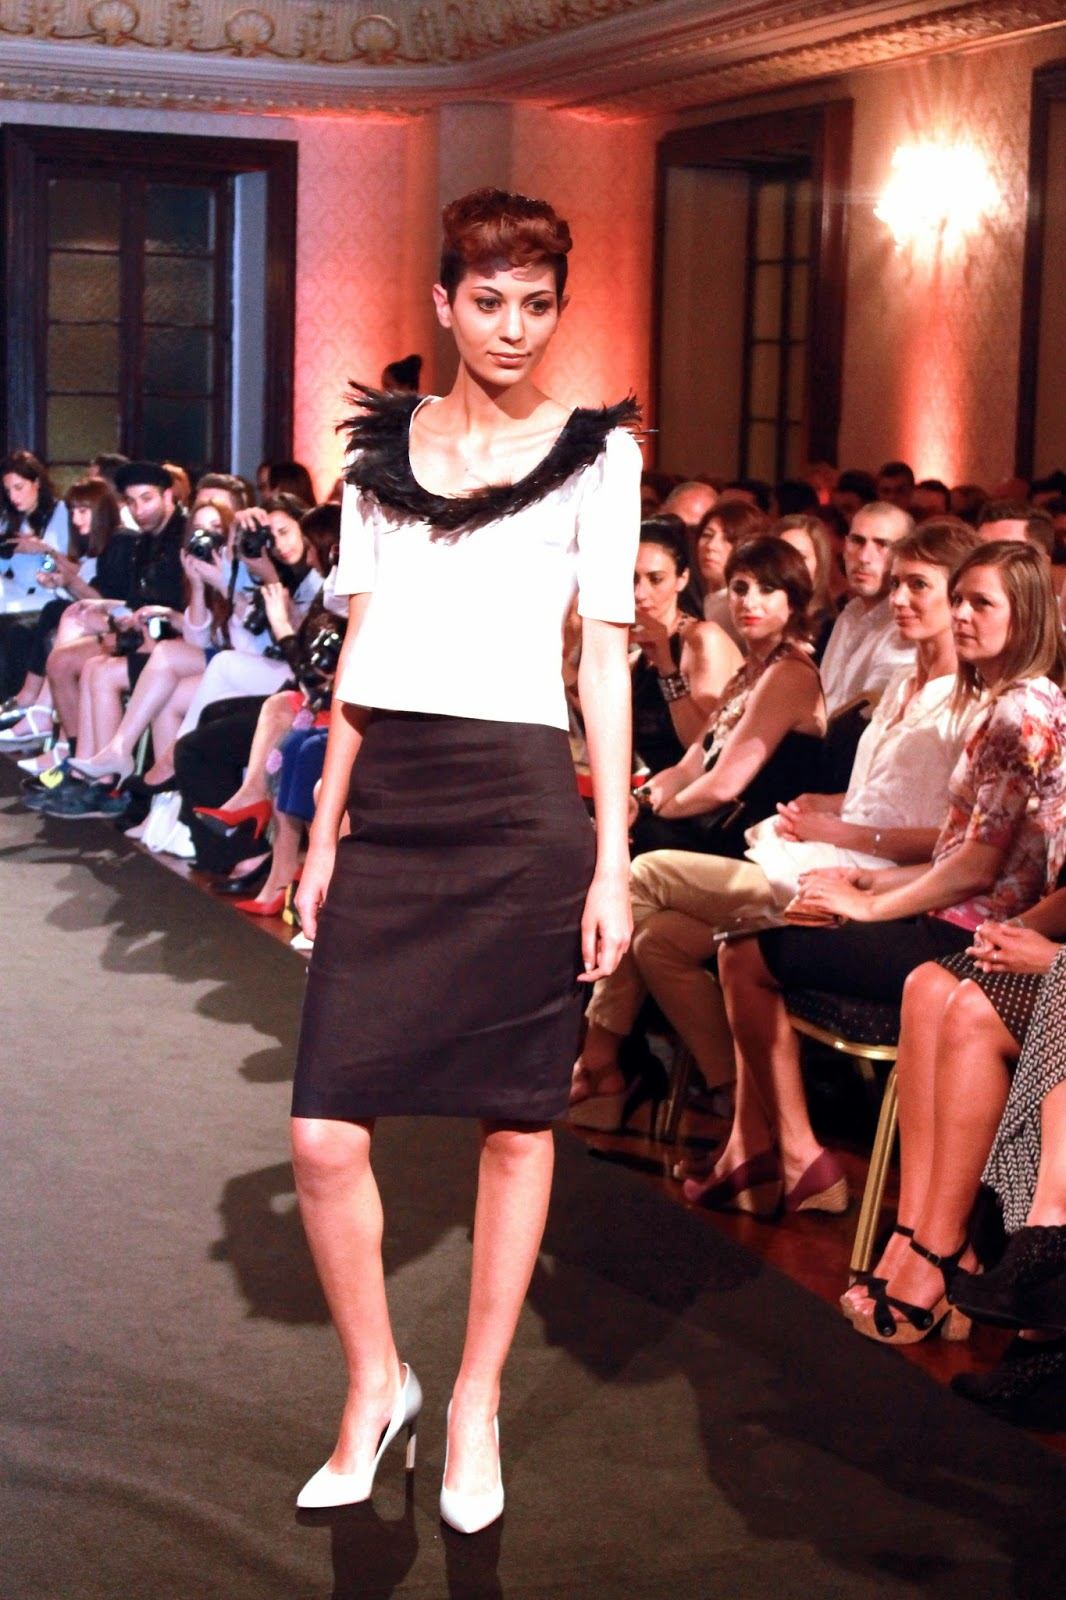 themorasmoothie, fashionblog, fashionblogger, fashion, malta, mercedes-benz fashion week, fashion week